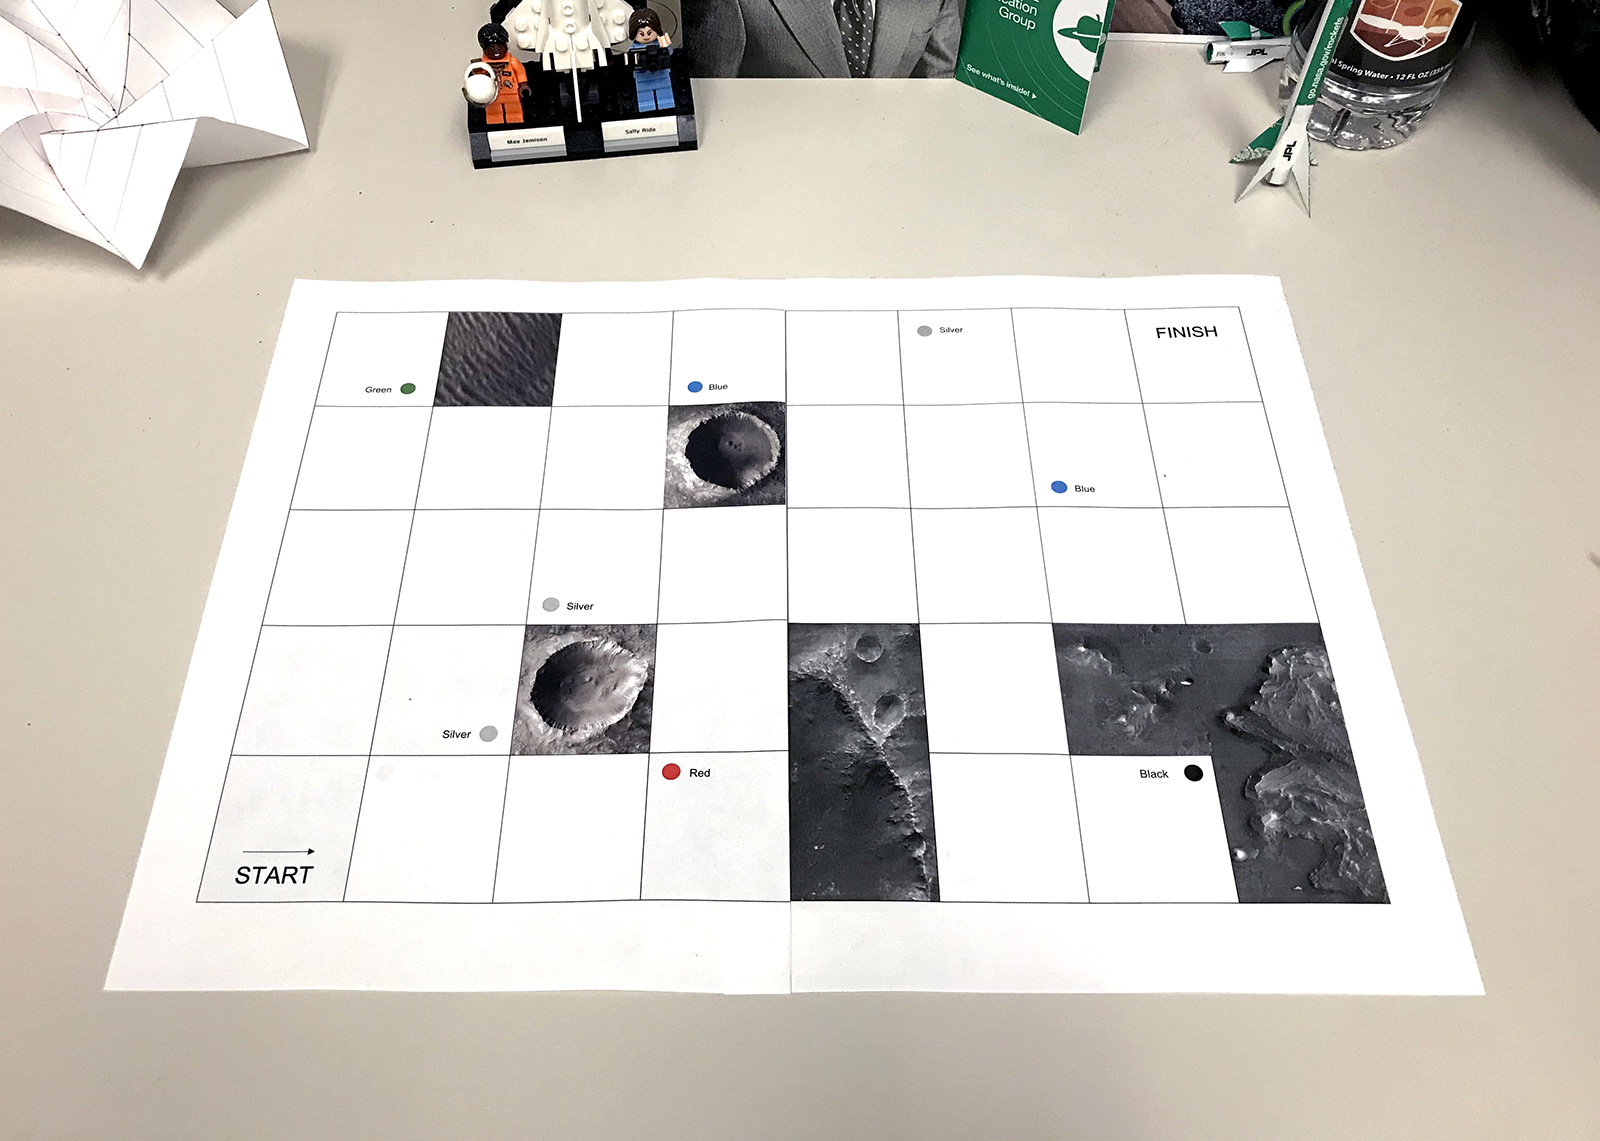 Photo of the two pages from the game board document taped together side by side